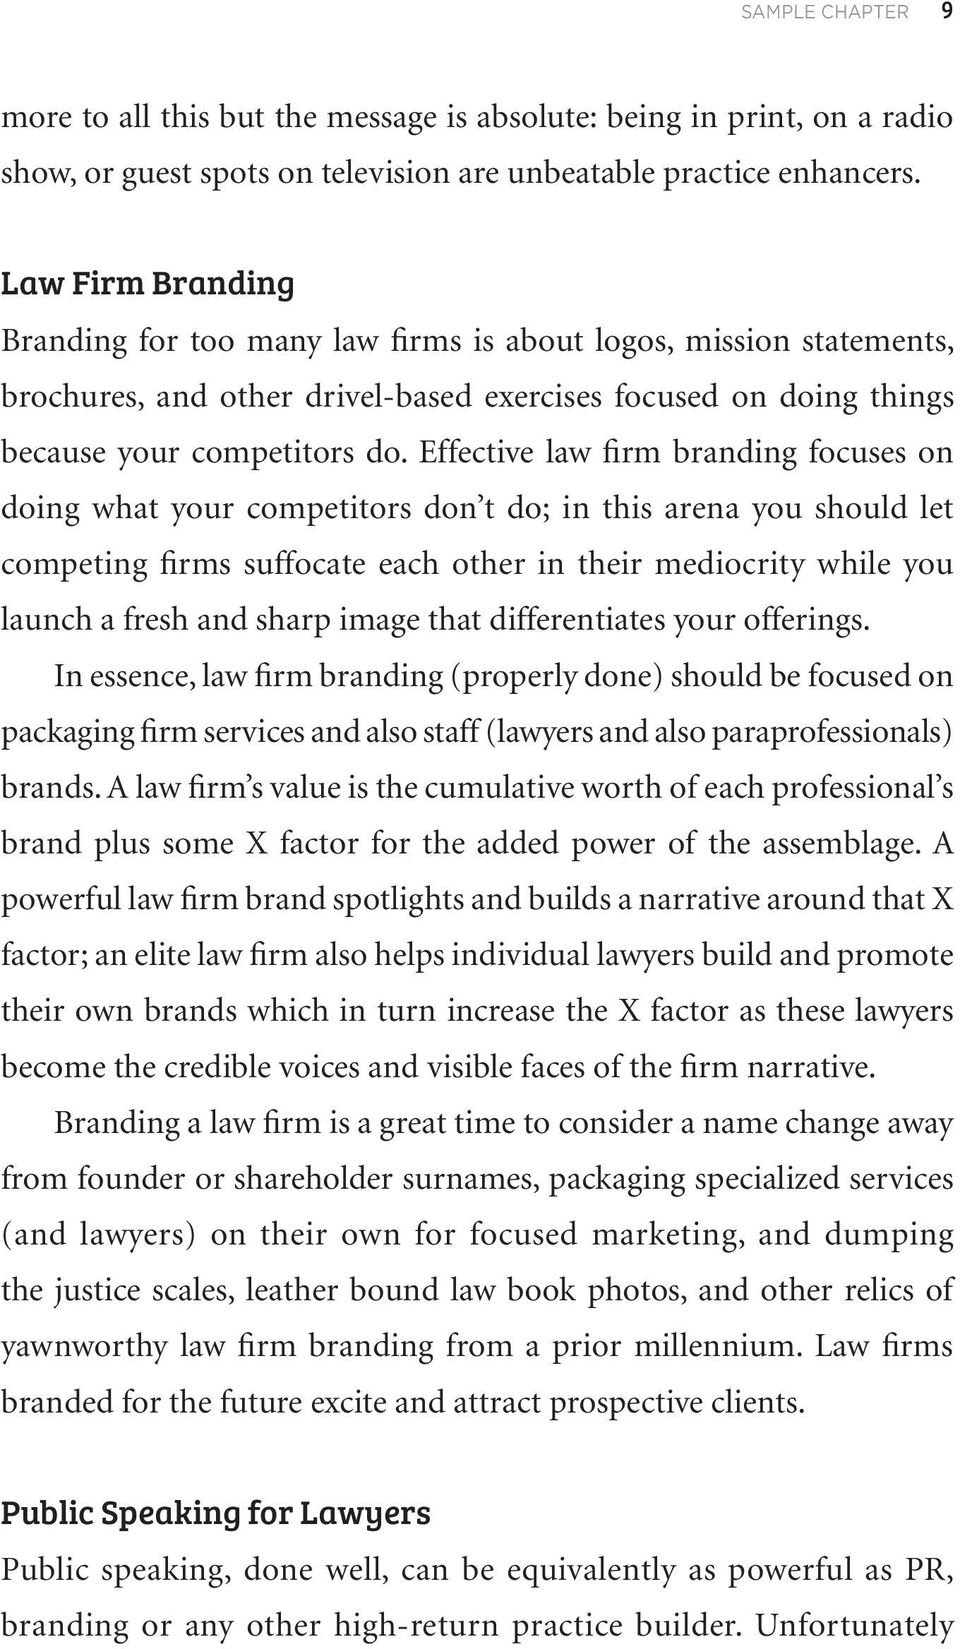 Effective law firm branding focuses on doing what your competitors don t do; in this arena you should let competing firms suffocate each other in their mediocrity while you launch a fresh and sharp